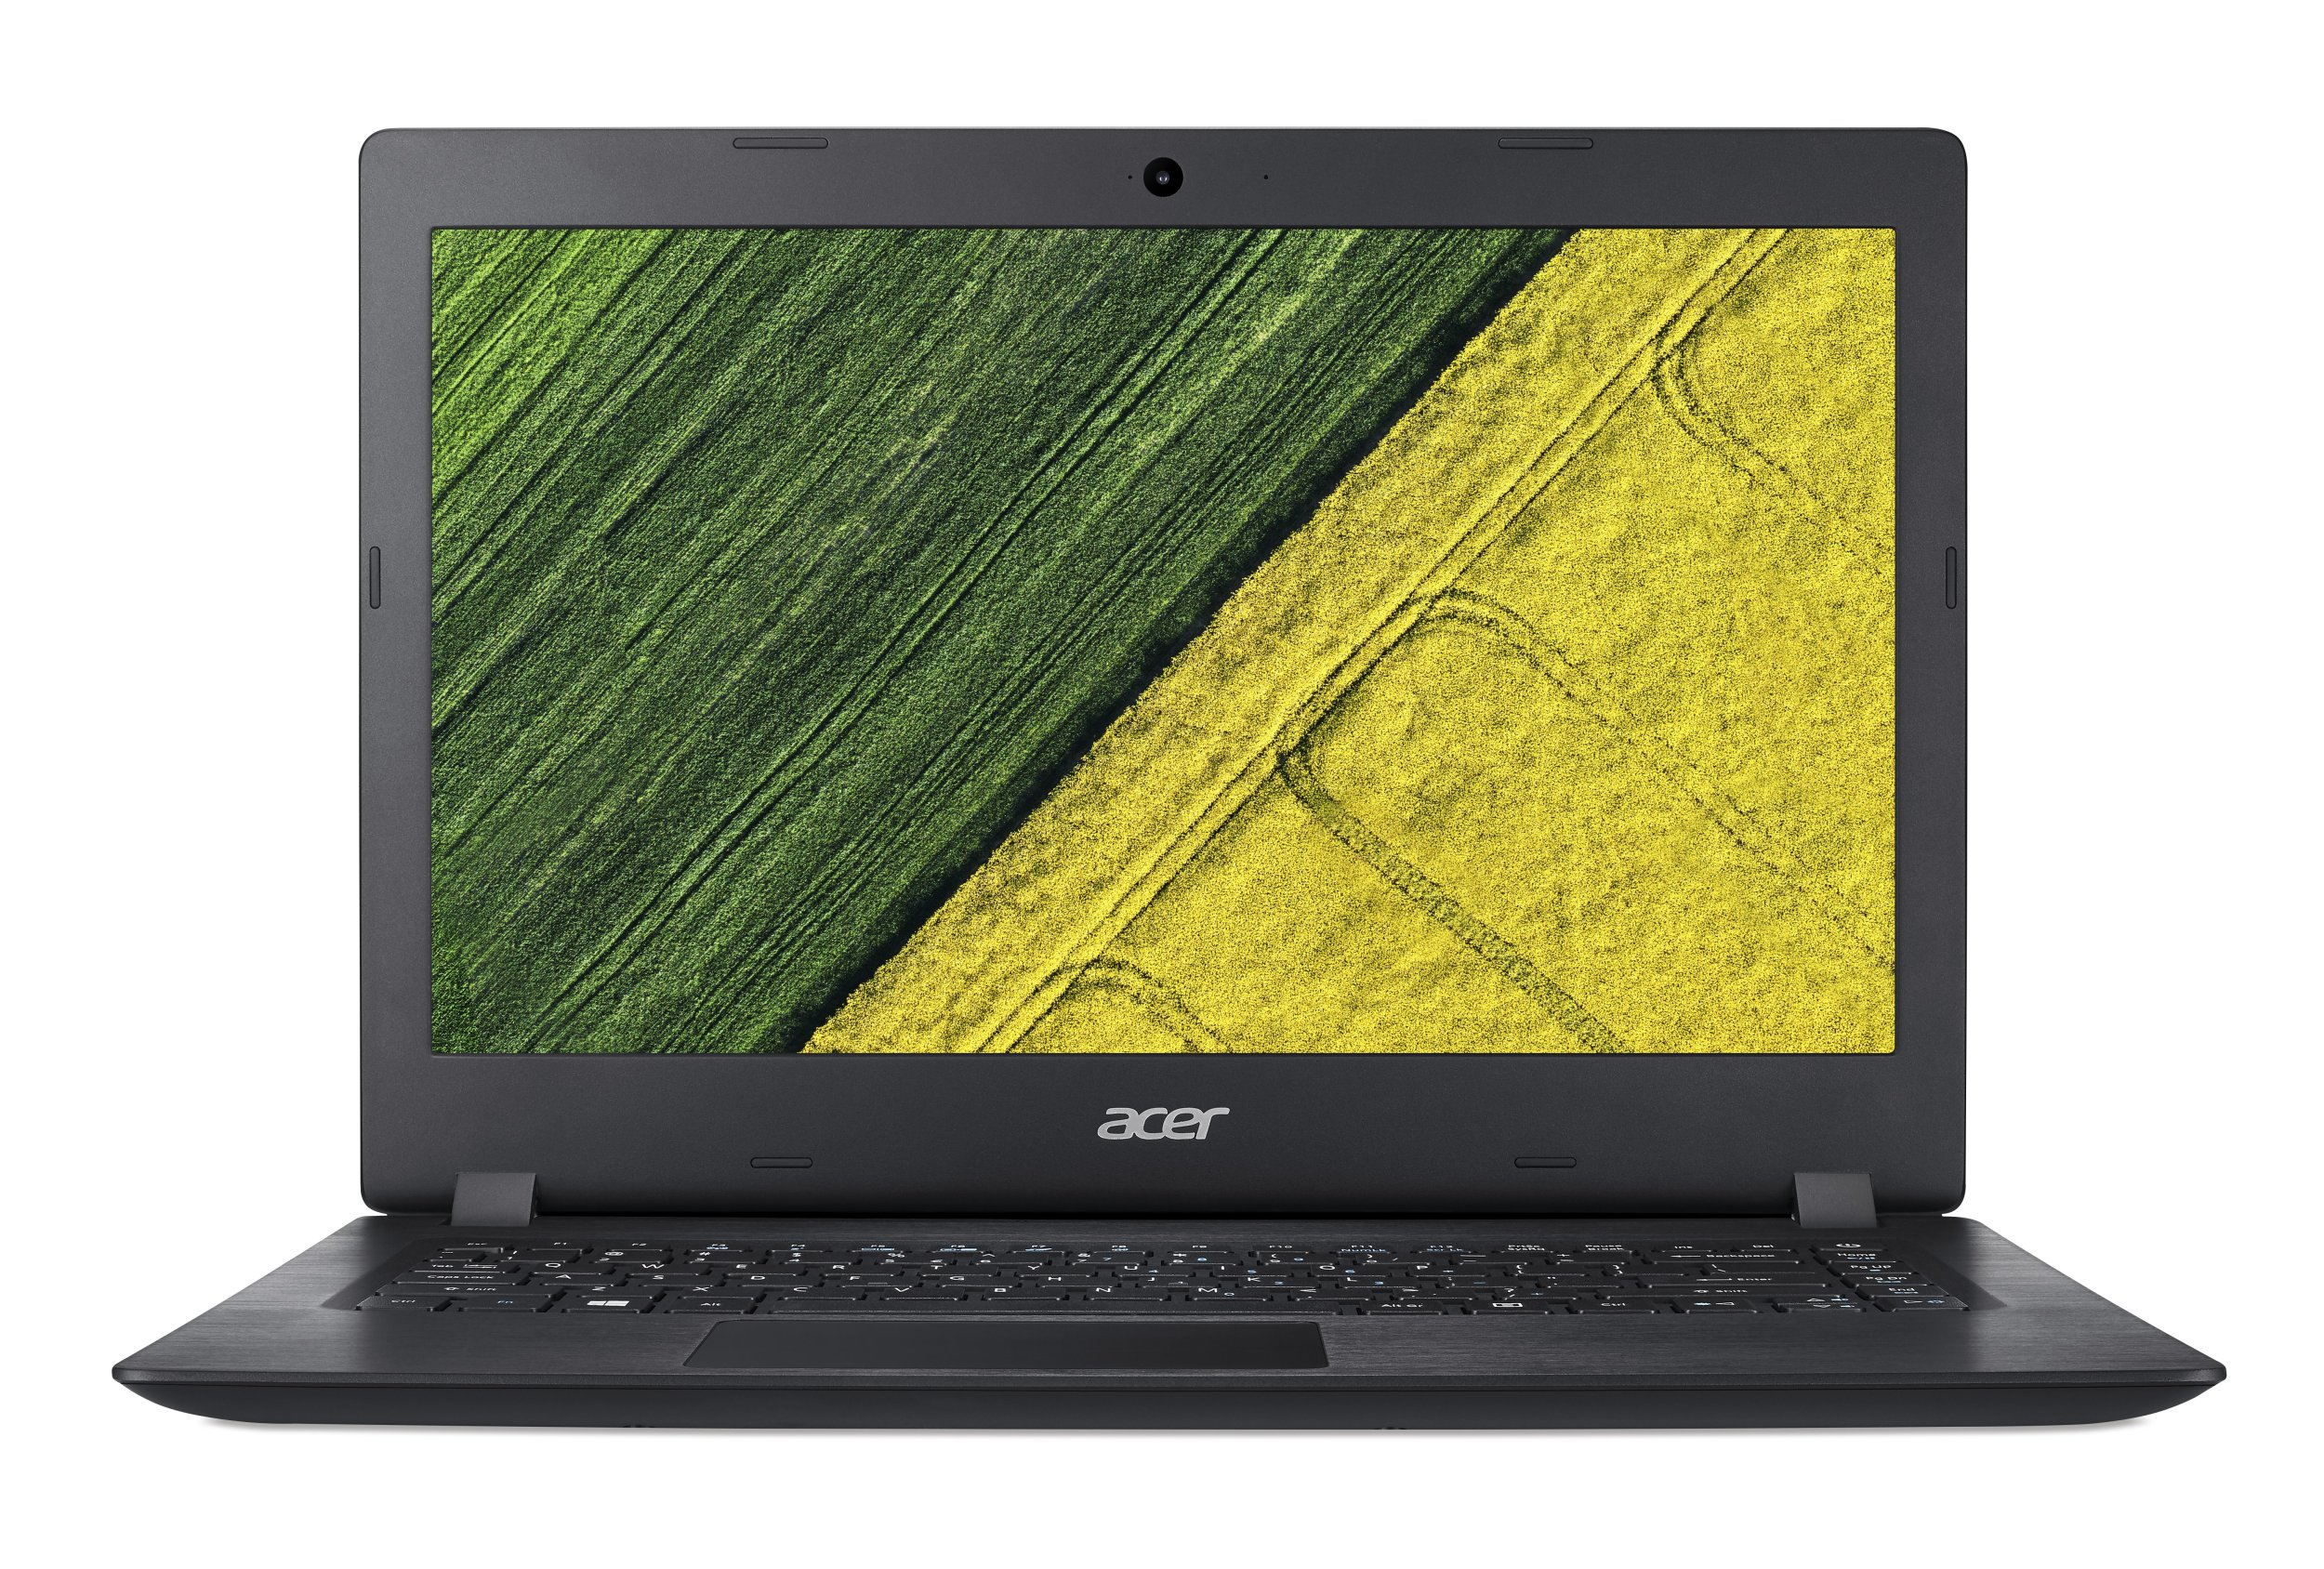 "Acer Aspire One (A114-31-C1HU) Celeron N3350/4GB+N/A/eMMC 32GB+N/A/HD Graphics/14"" HD matný/BT/W10 Home/Black"